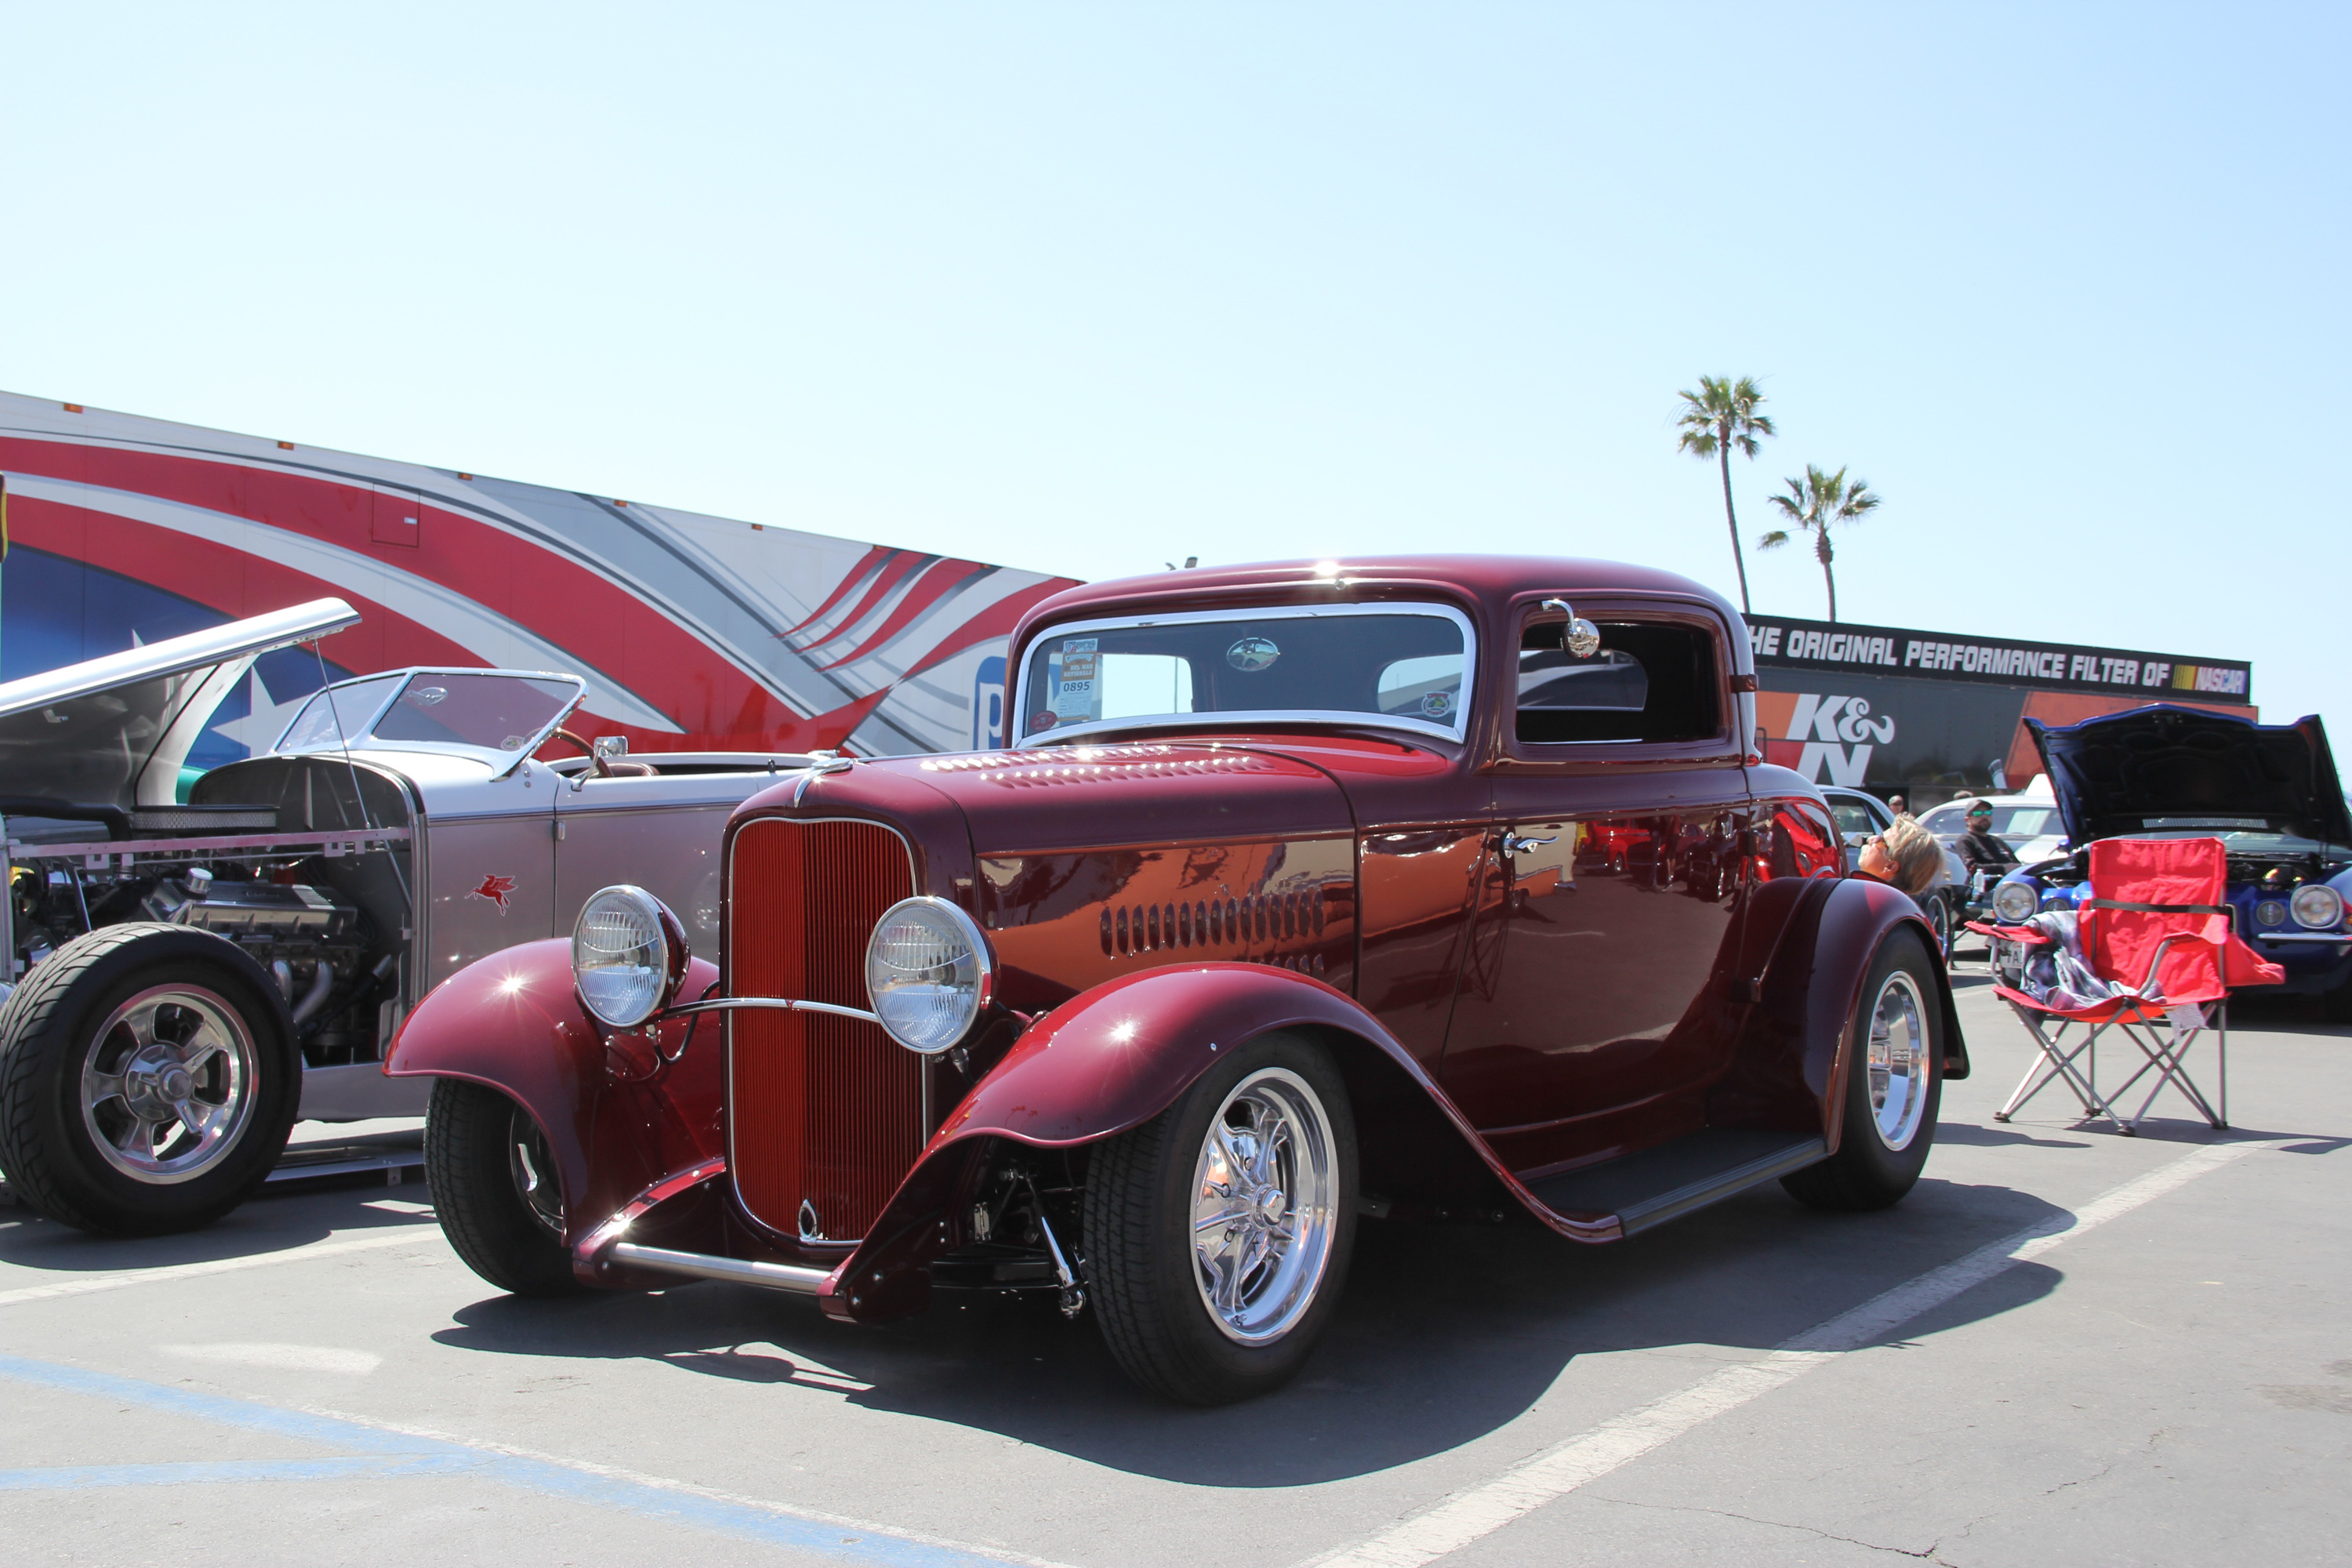 red 1932 Ford Deuce coupe at a show